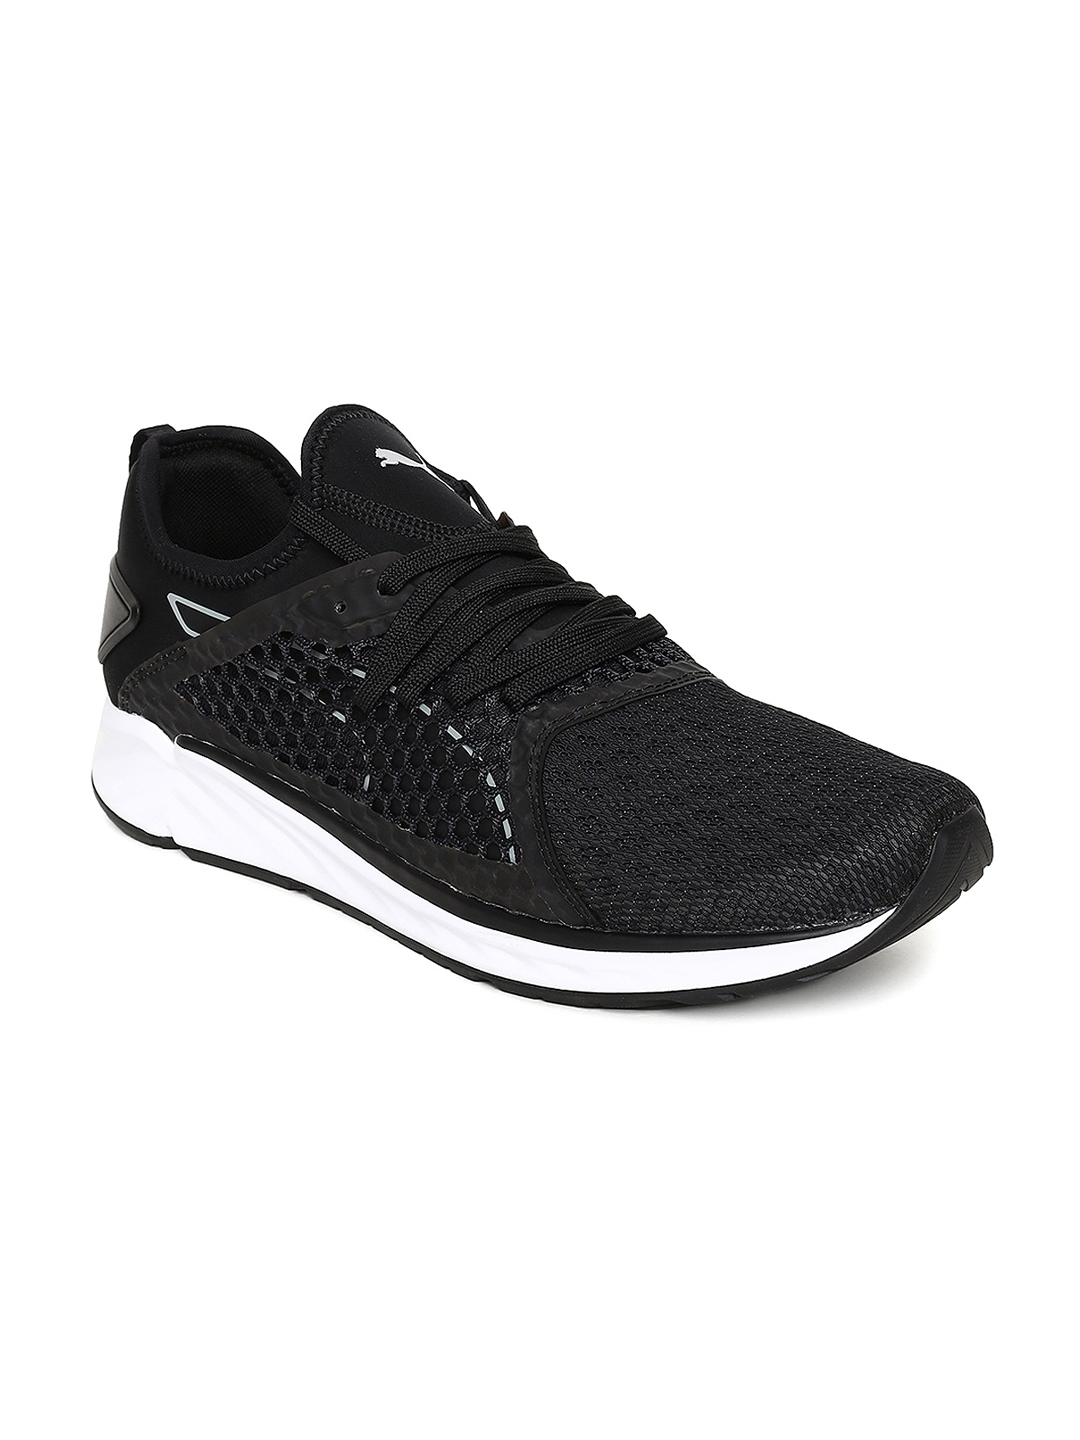 Buy Puma Men Black IGNITE 4 NETFIT Running Shoes - Sports Shoes for ... 63e187d35